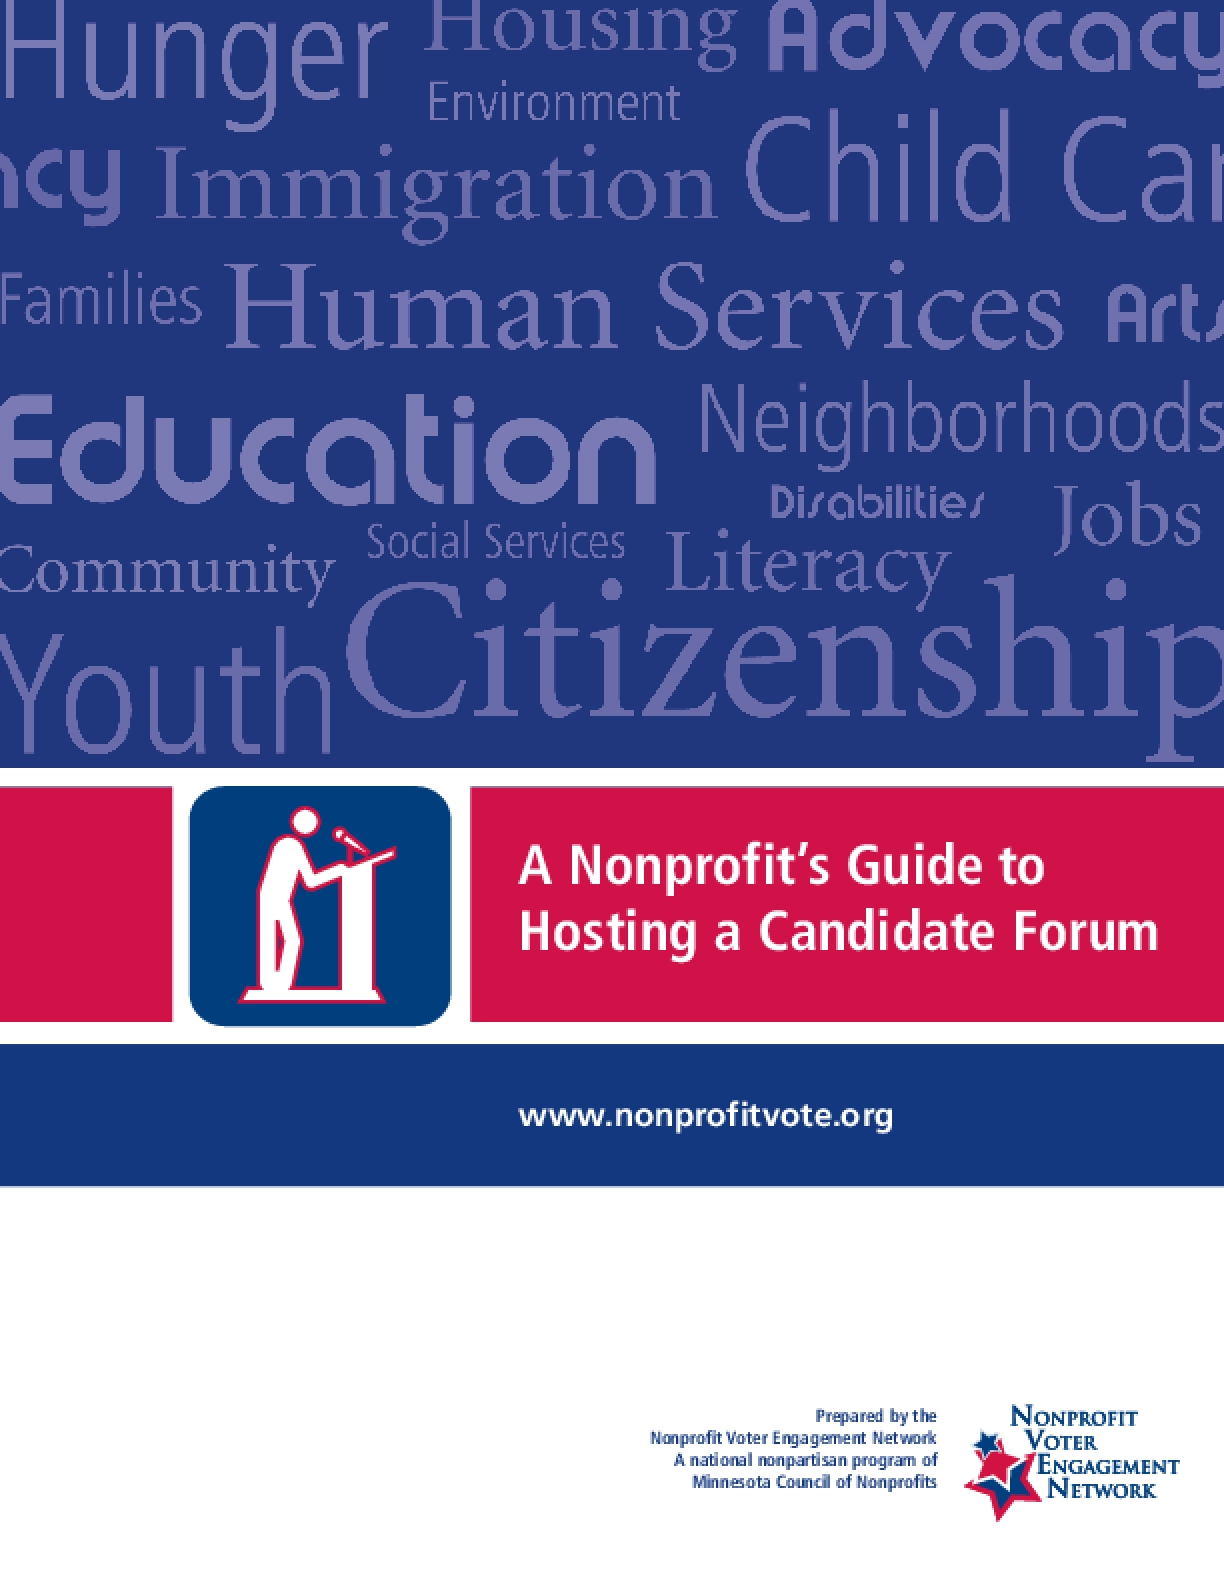 A Nonprofit's Guide to Hosting a Candidate Forum